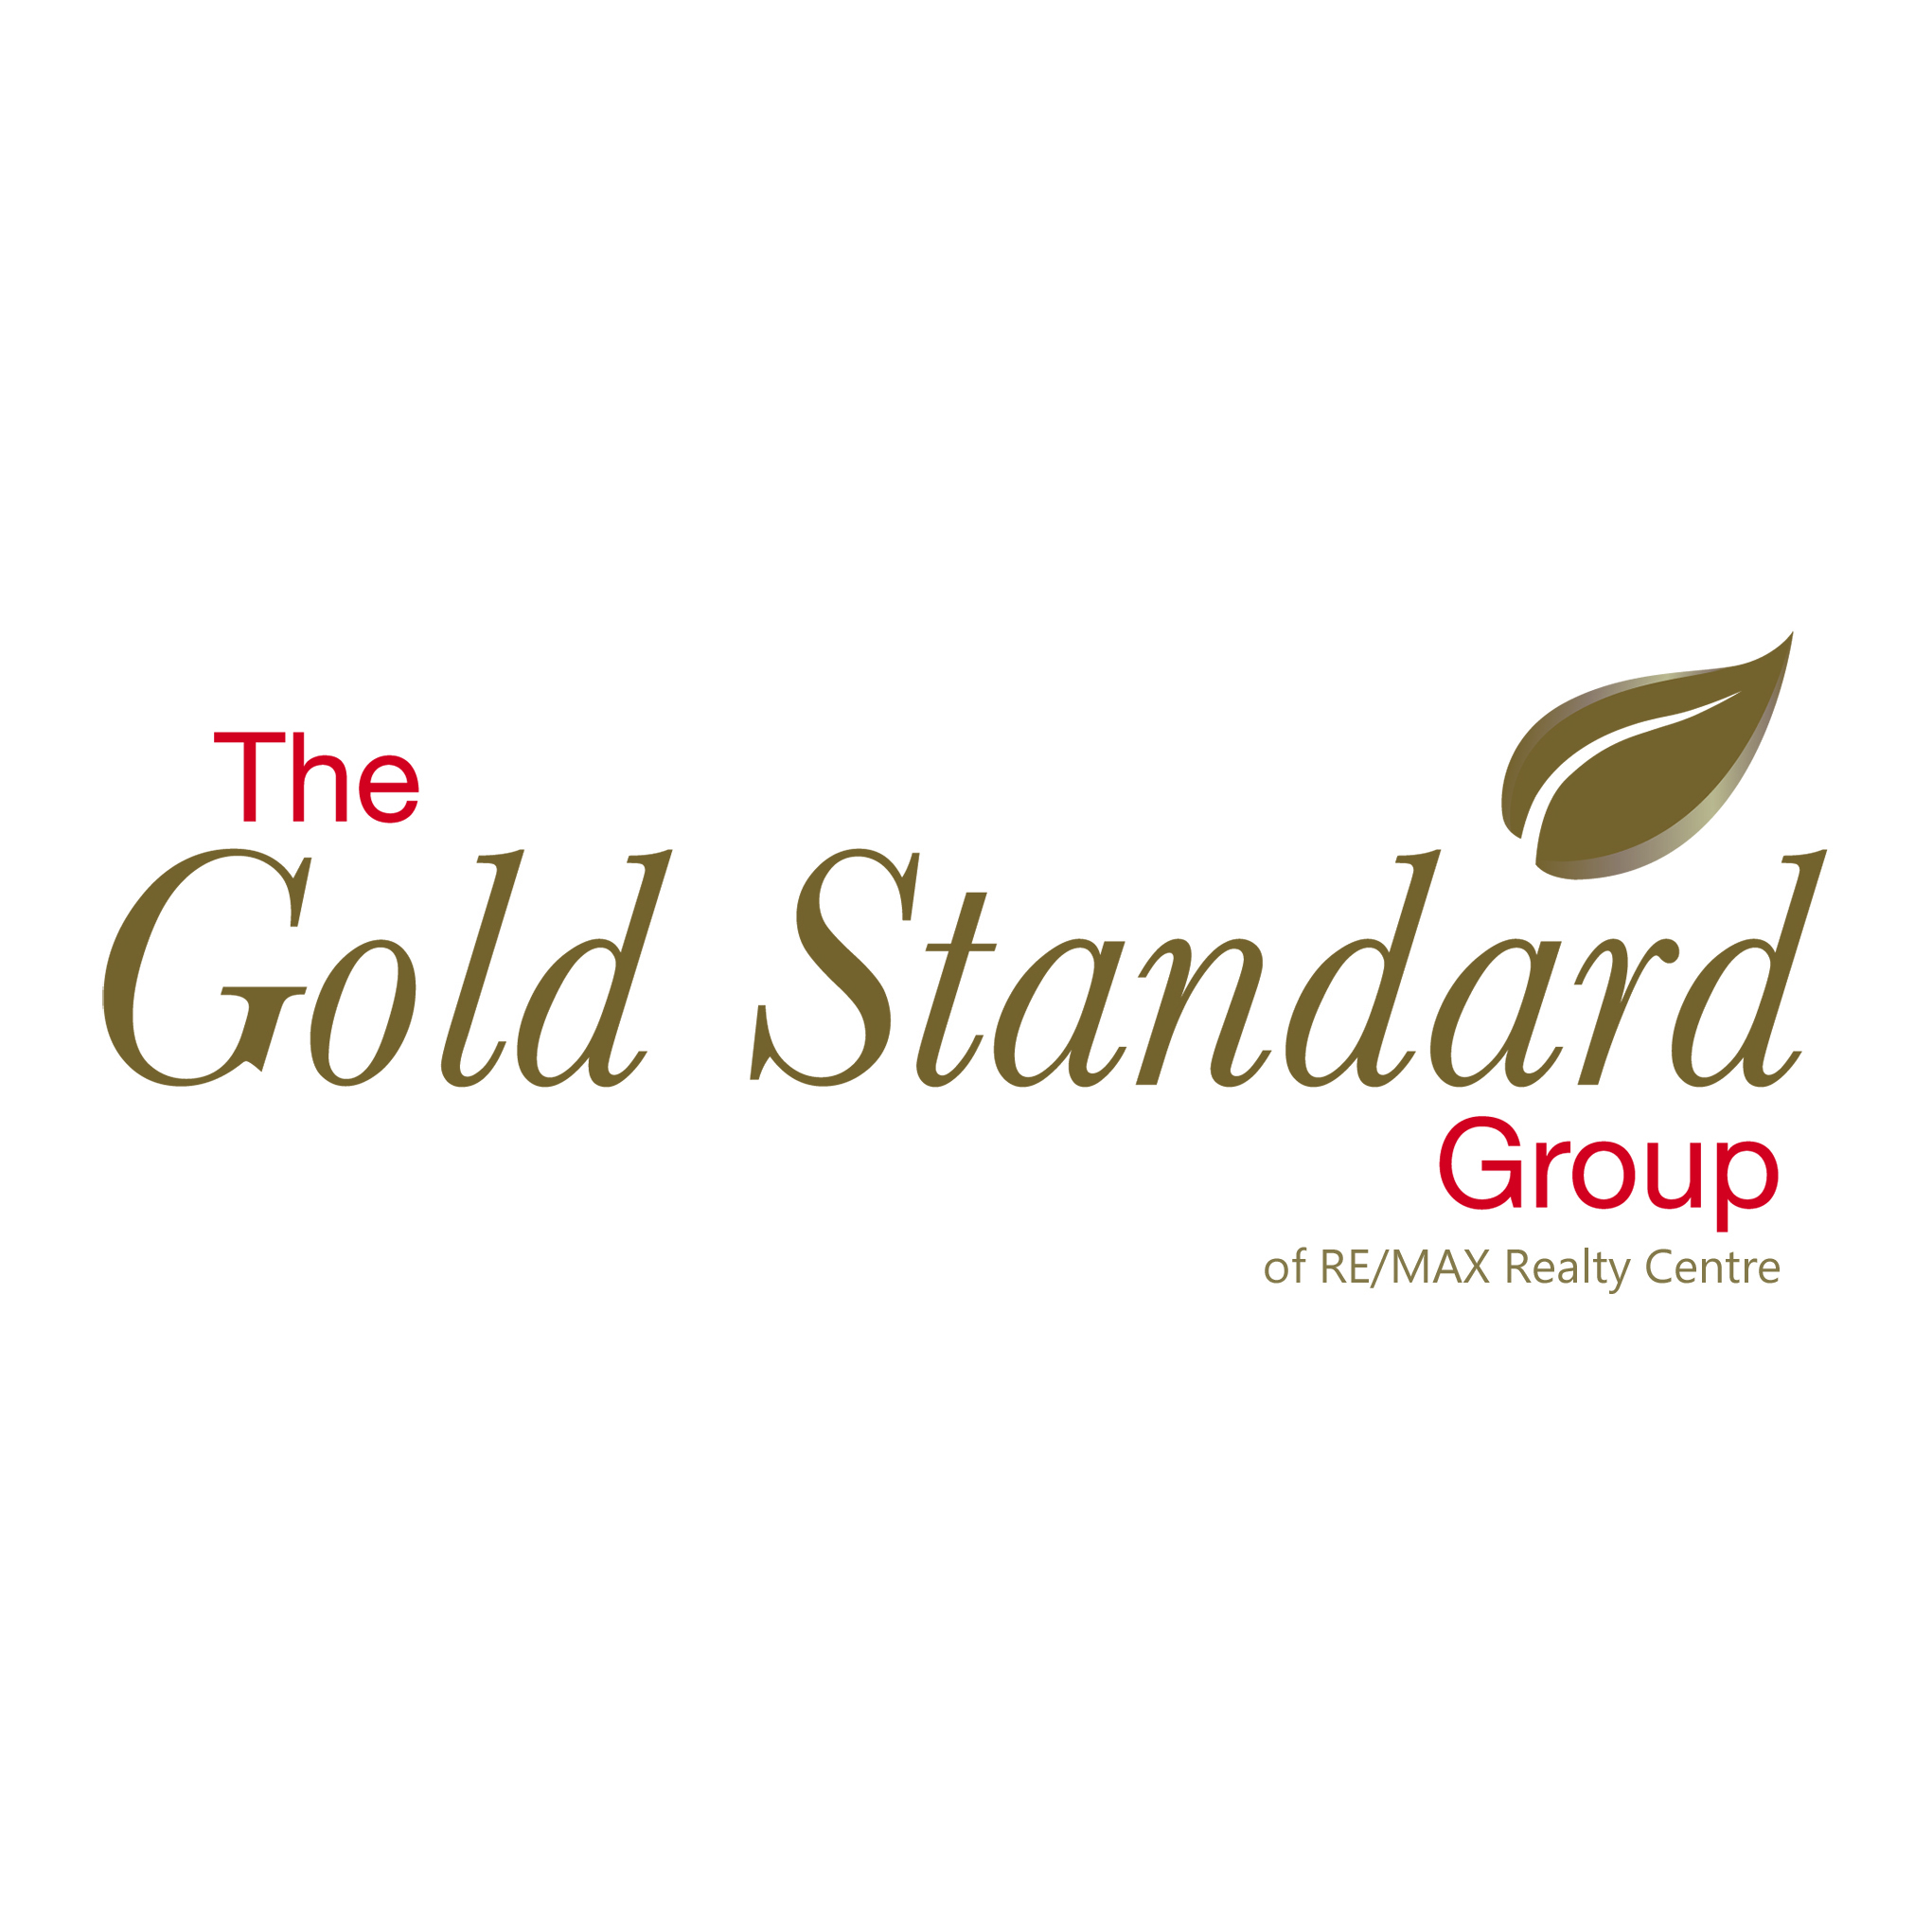 The Gold Standard Group of RE/MAX Realty Centre logo